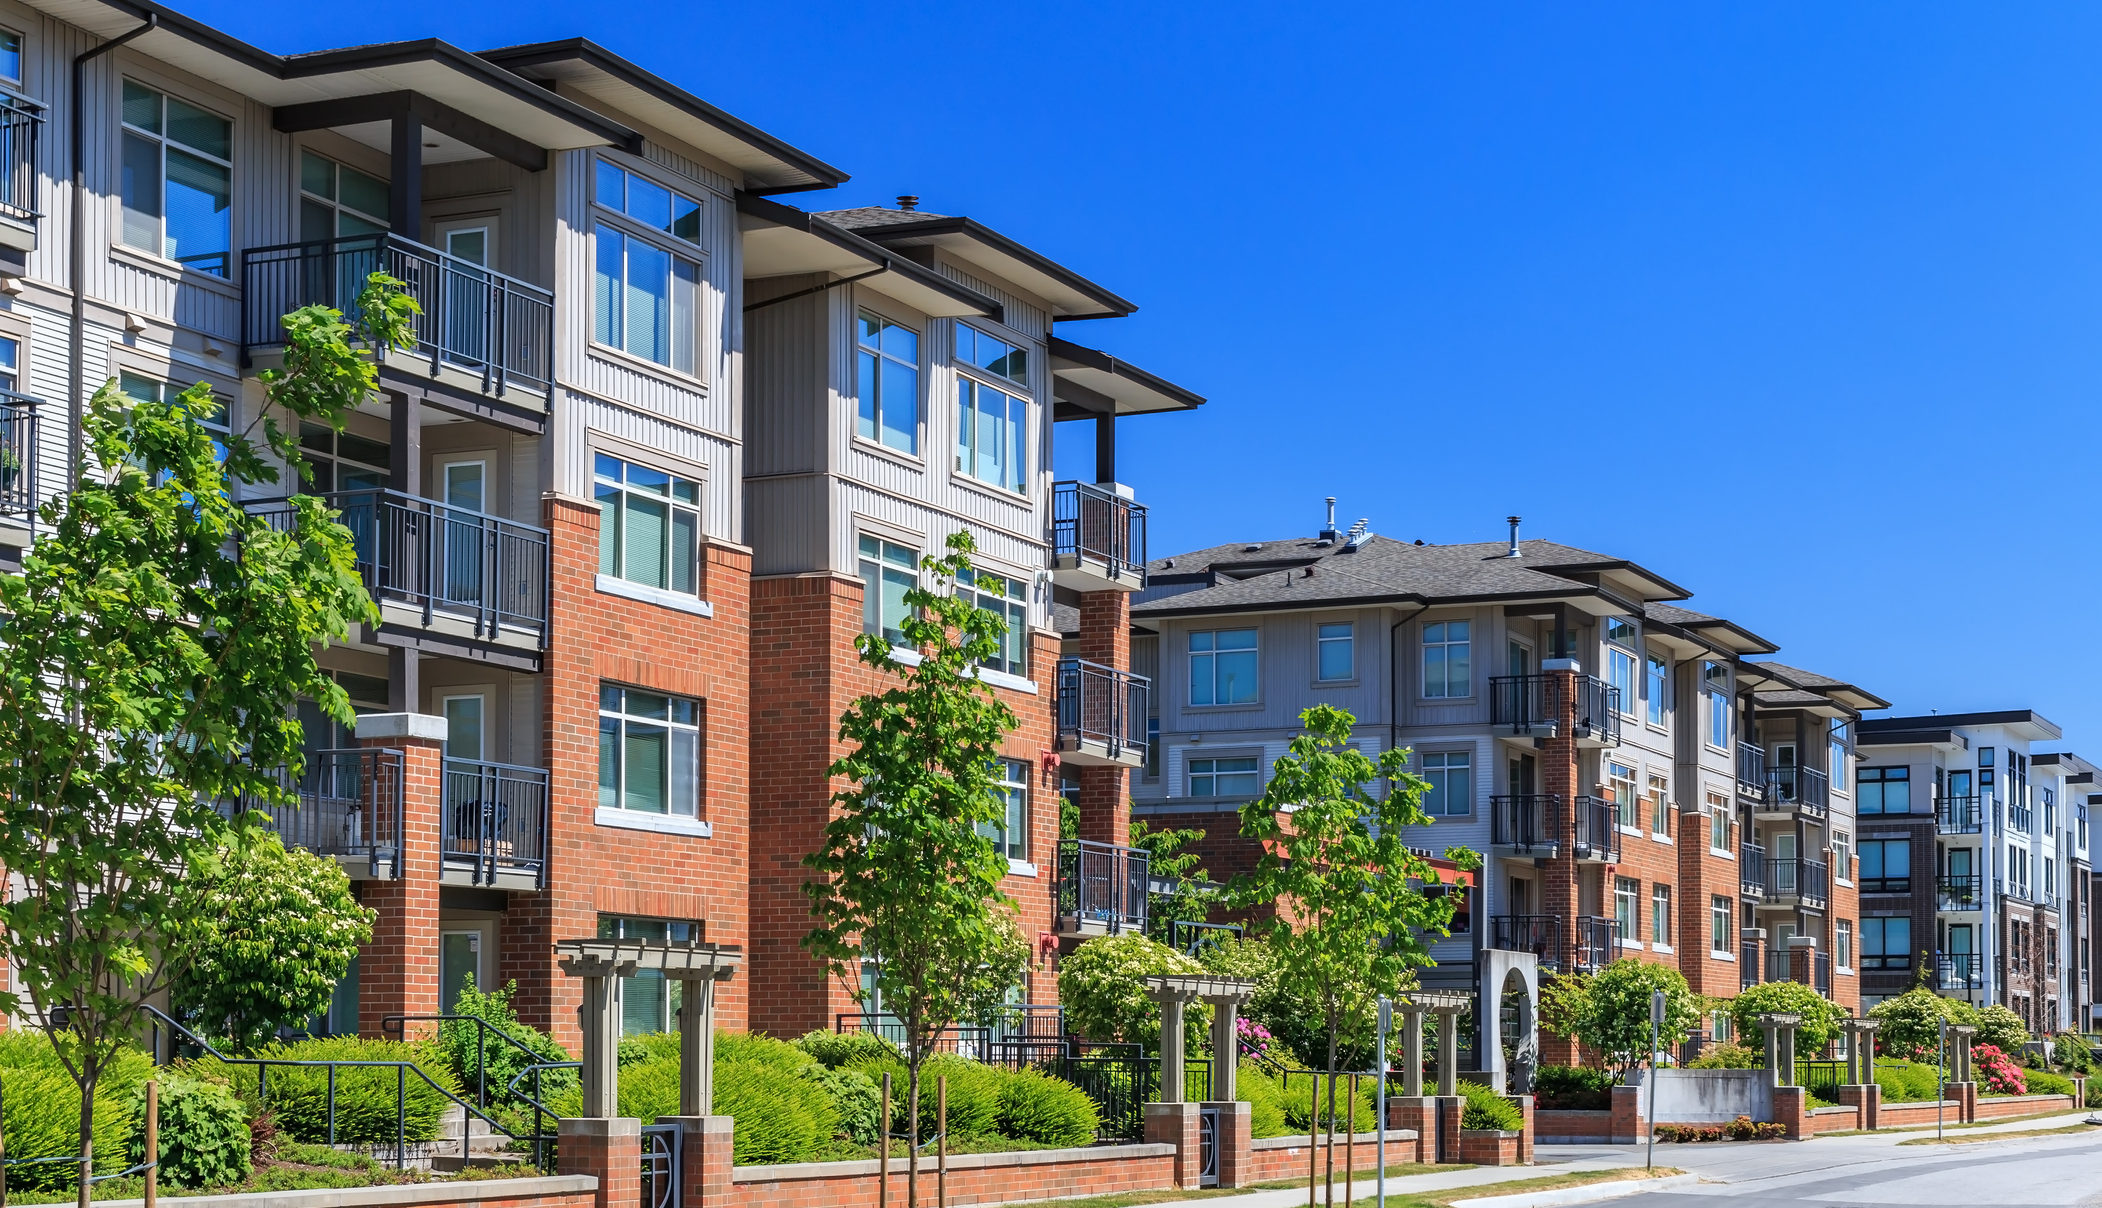 Commercial Real Estate Snellville